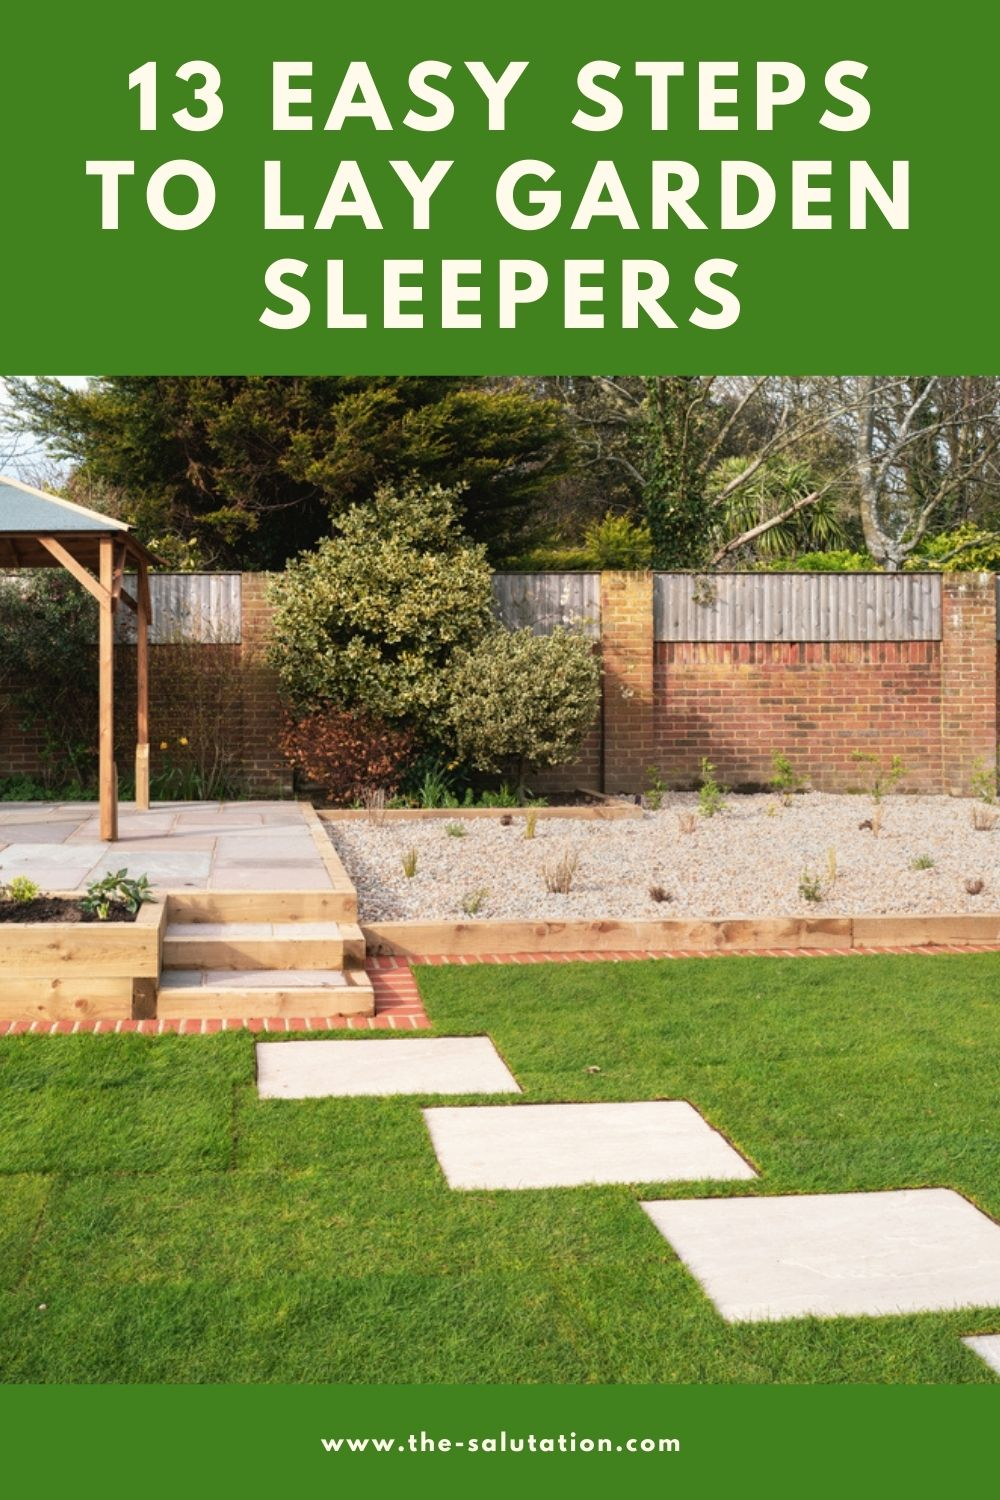 13 Easy Steps to Lay Garden Sleepers 1